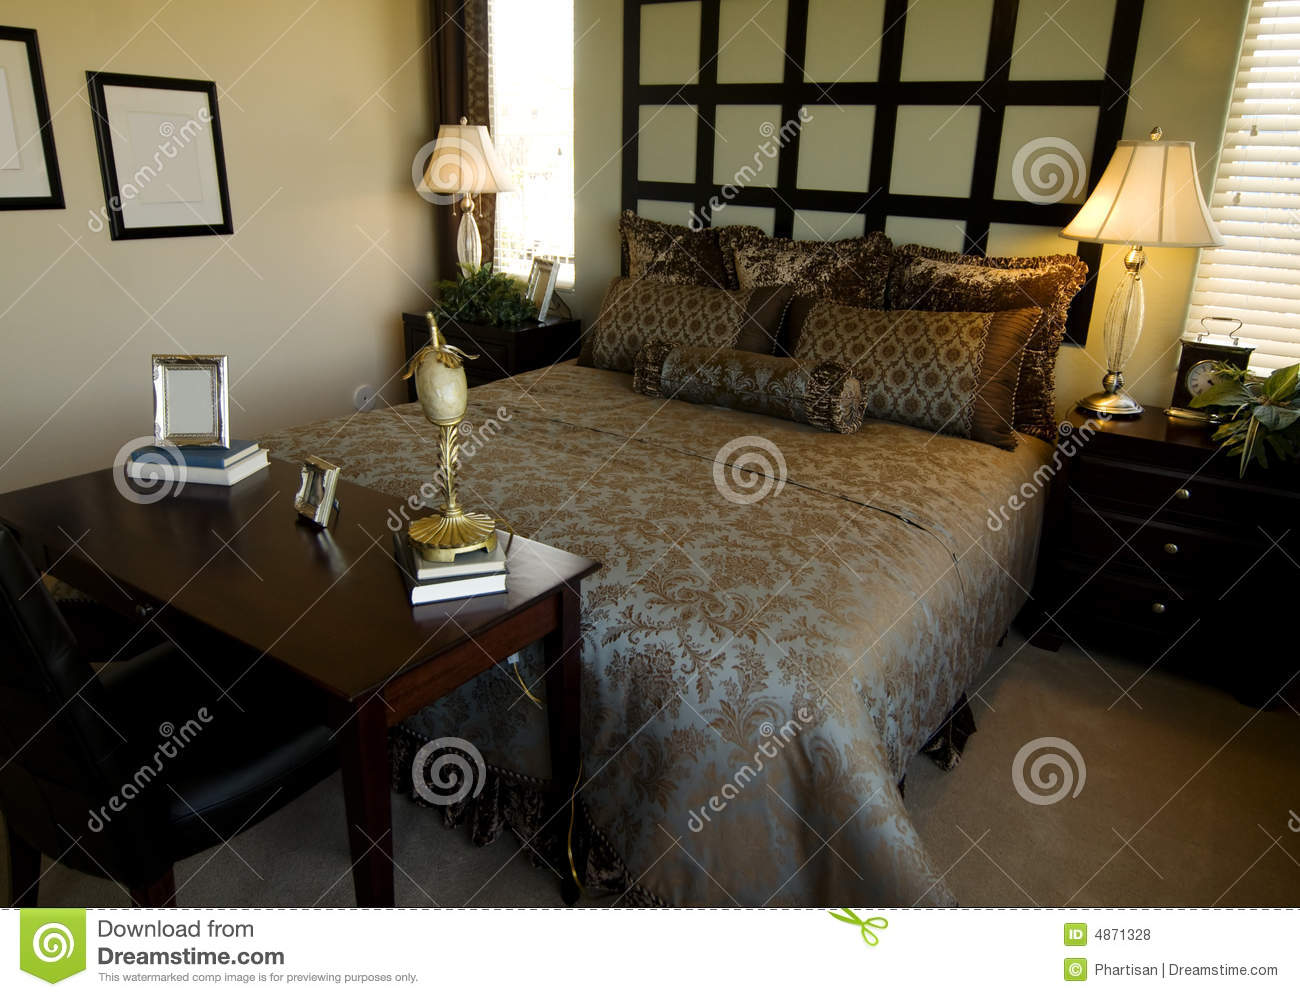 Beautiful bedroom interior design royalty free stock for Beautiful bedroom interior